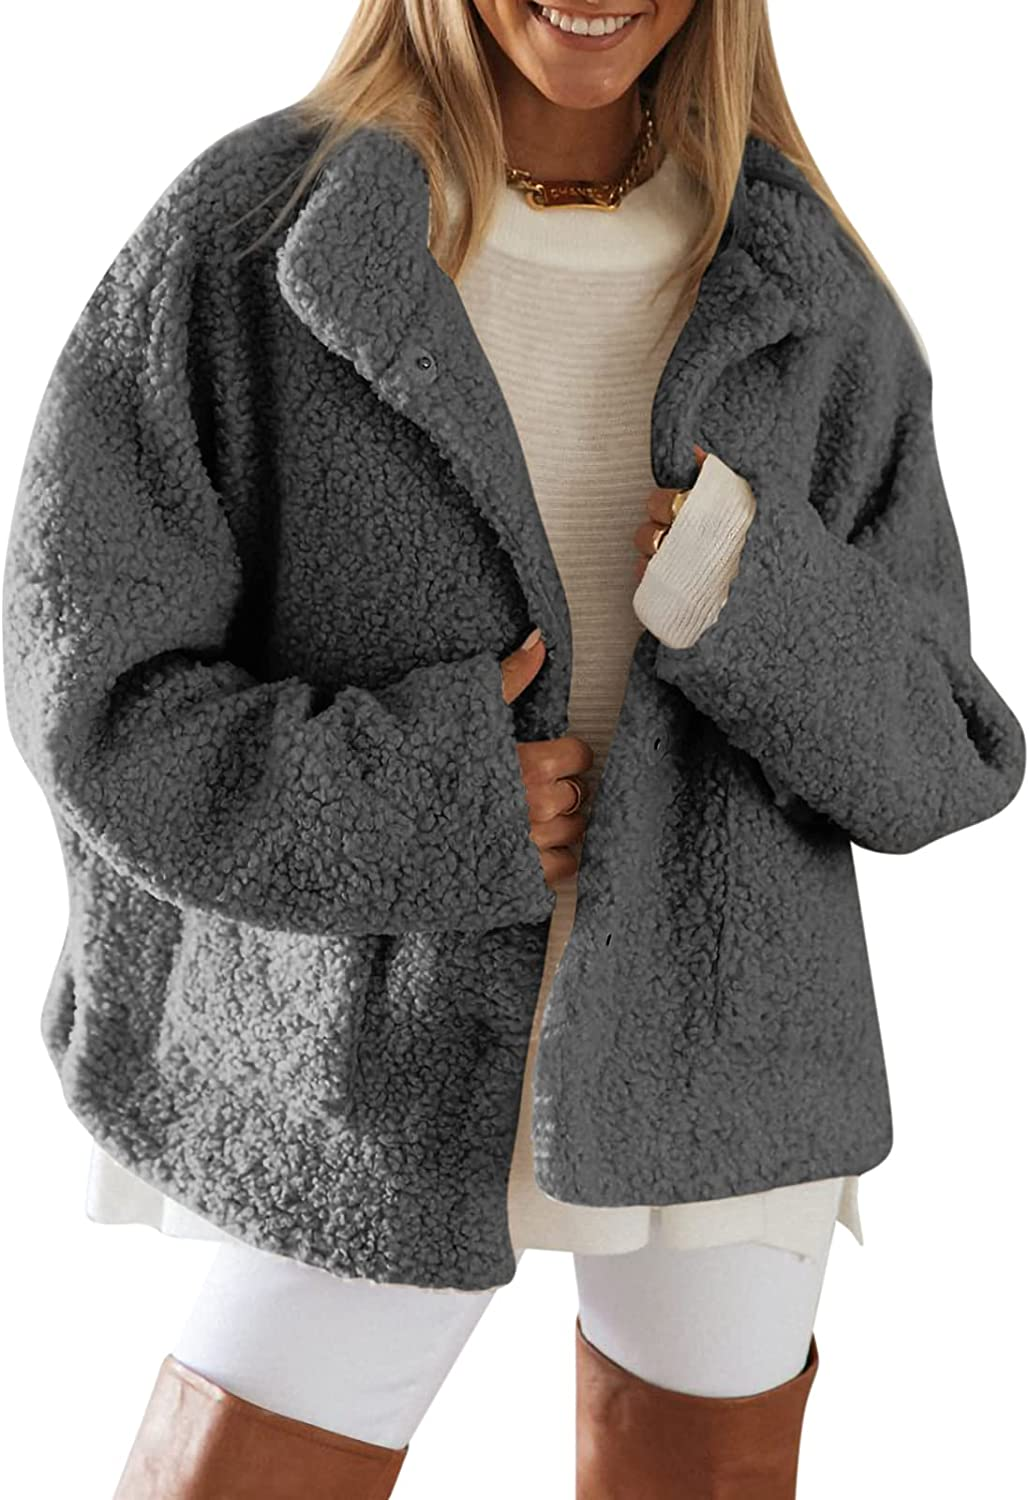 Womens Shearling Coat Long Sleeve Lapel Buckled Shaggy Fluffy Sweater With Pockets Warm Winter